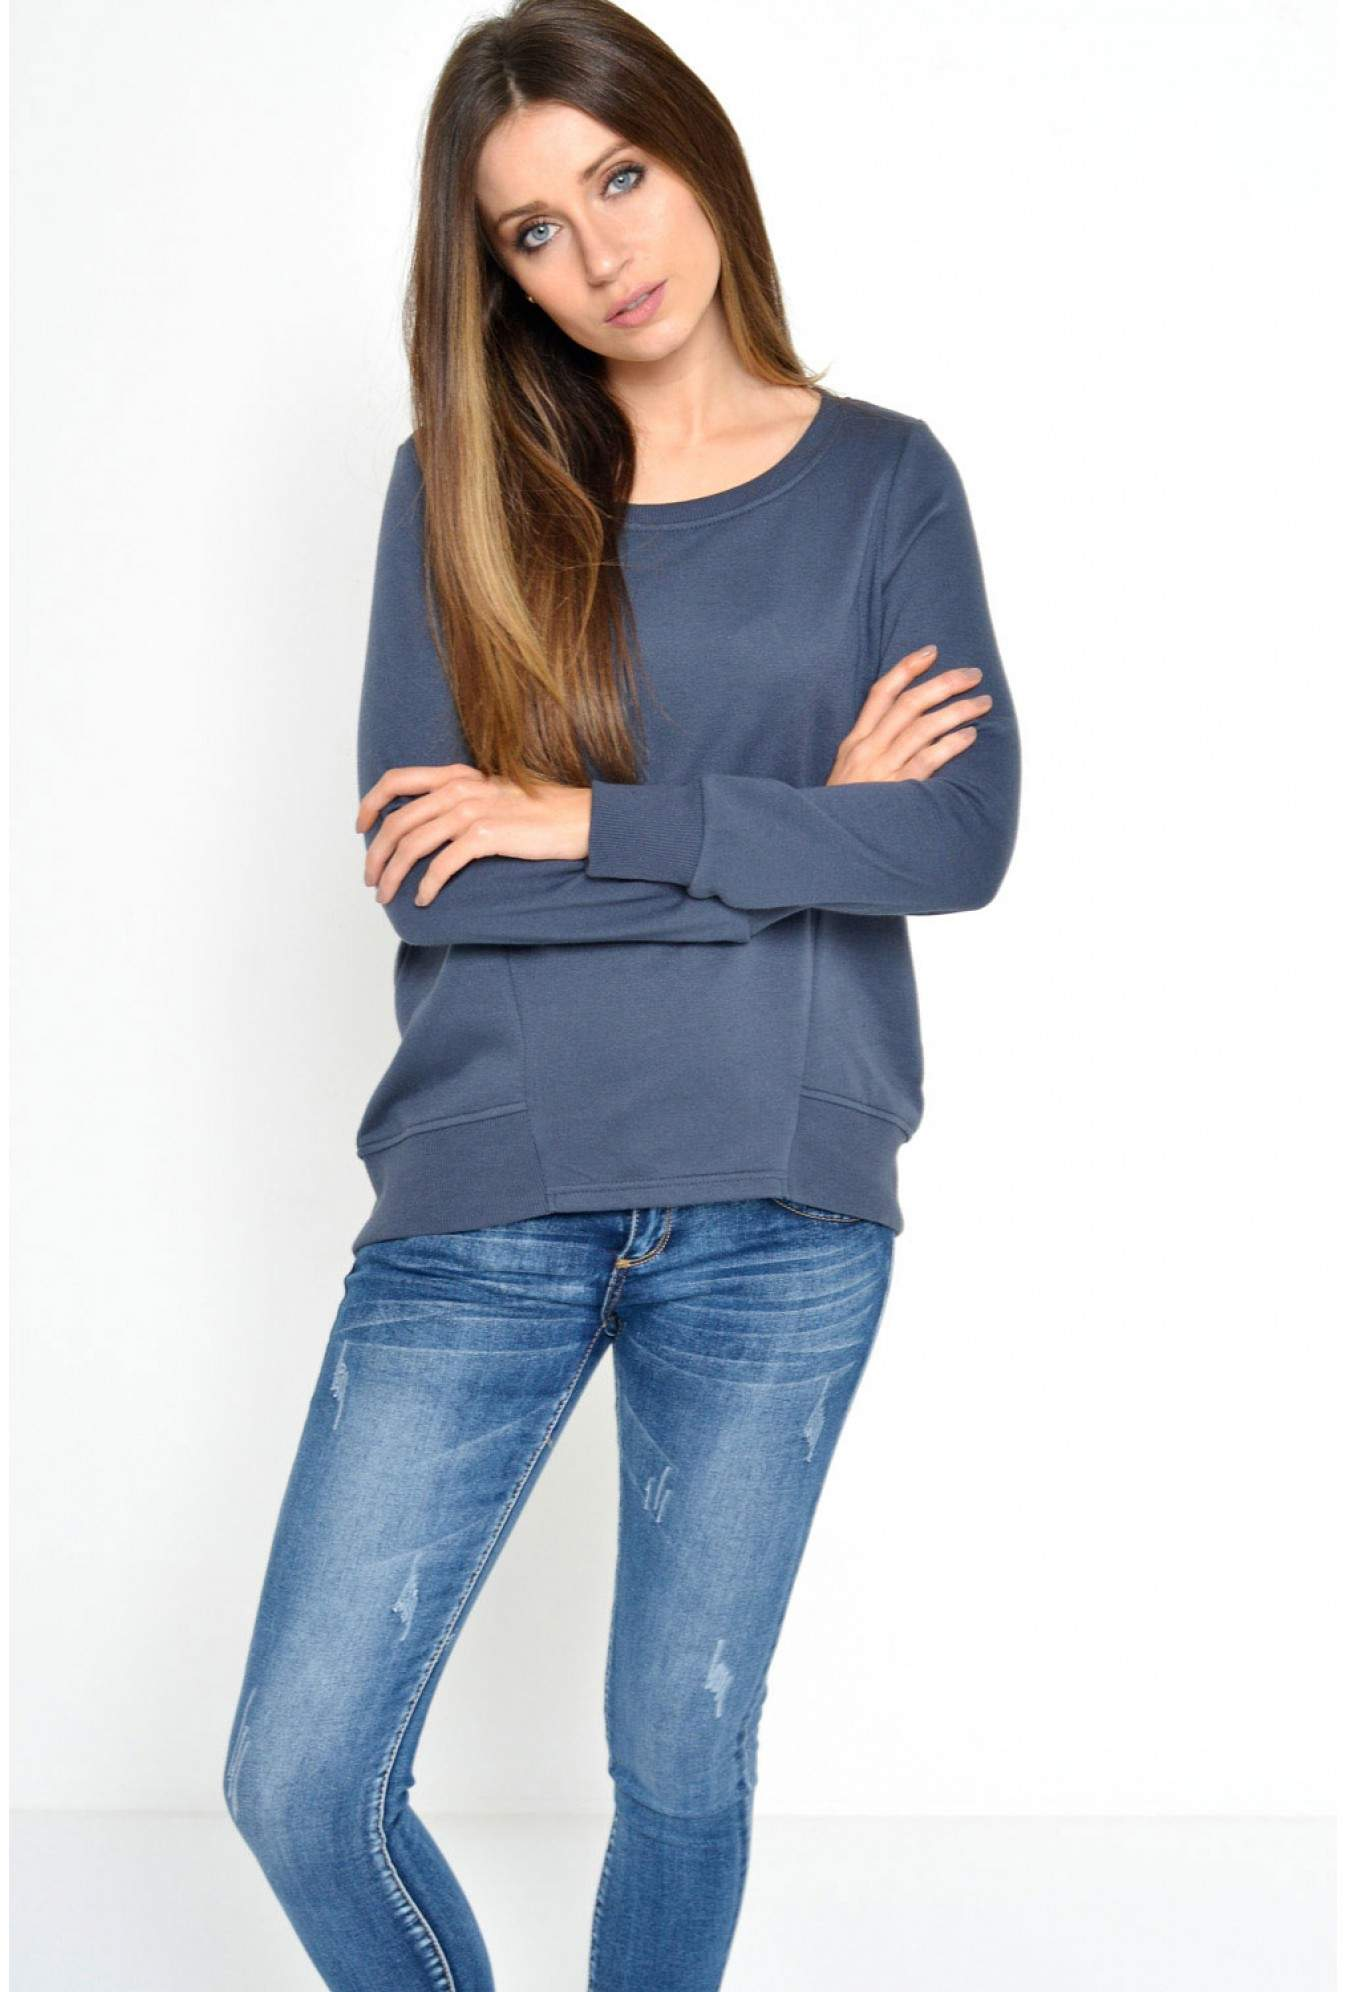 eb82f9fdc52a Noisy May Kara Christian L/S Sweater in Blue | iCLOTHING